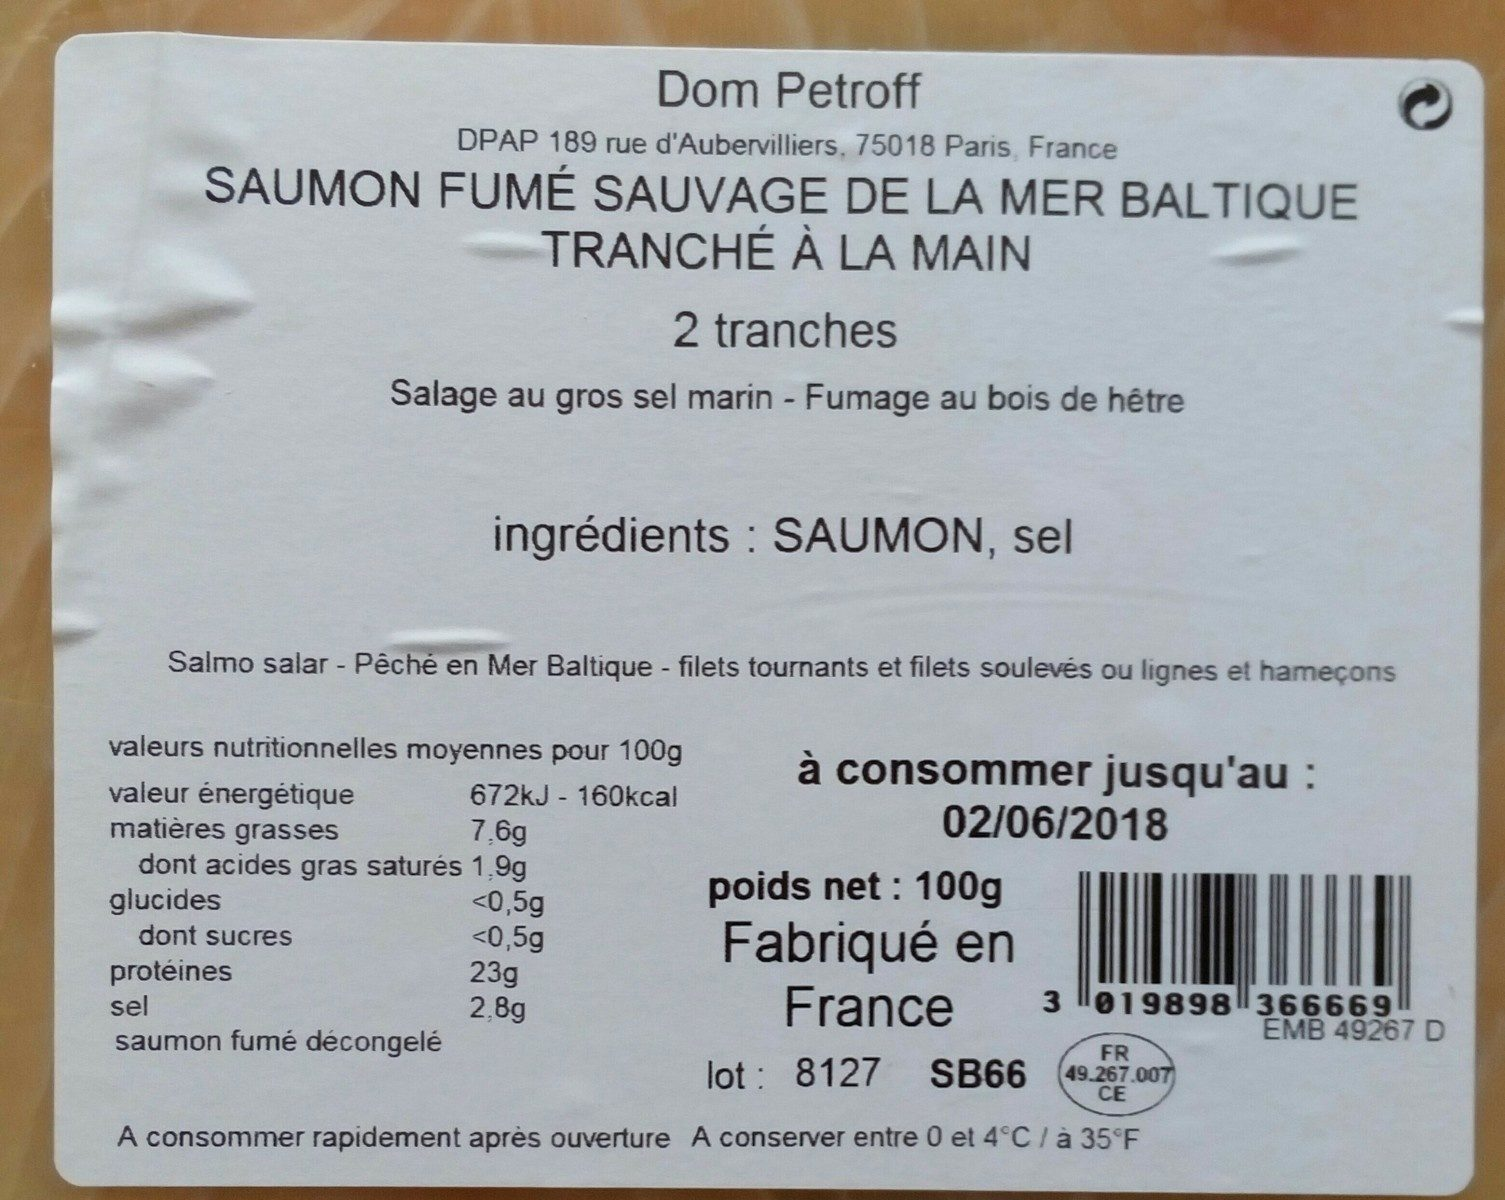 Saumon fumé sauvage de la mer Baltique tranchée à la main - Ingredients - fr